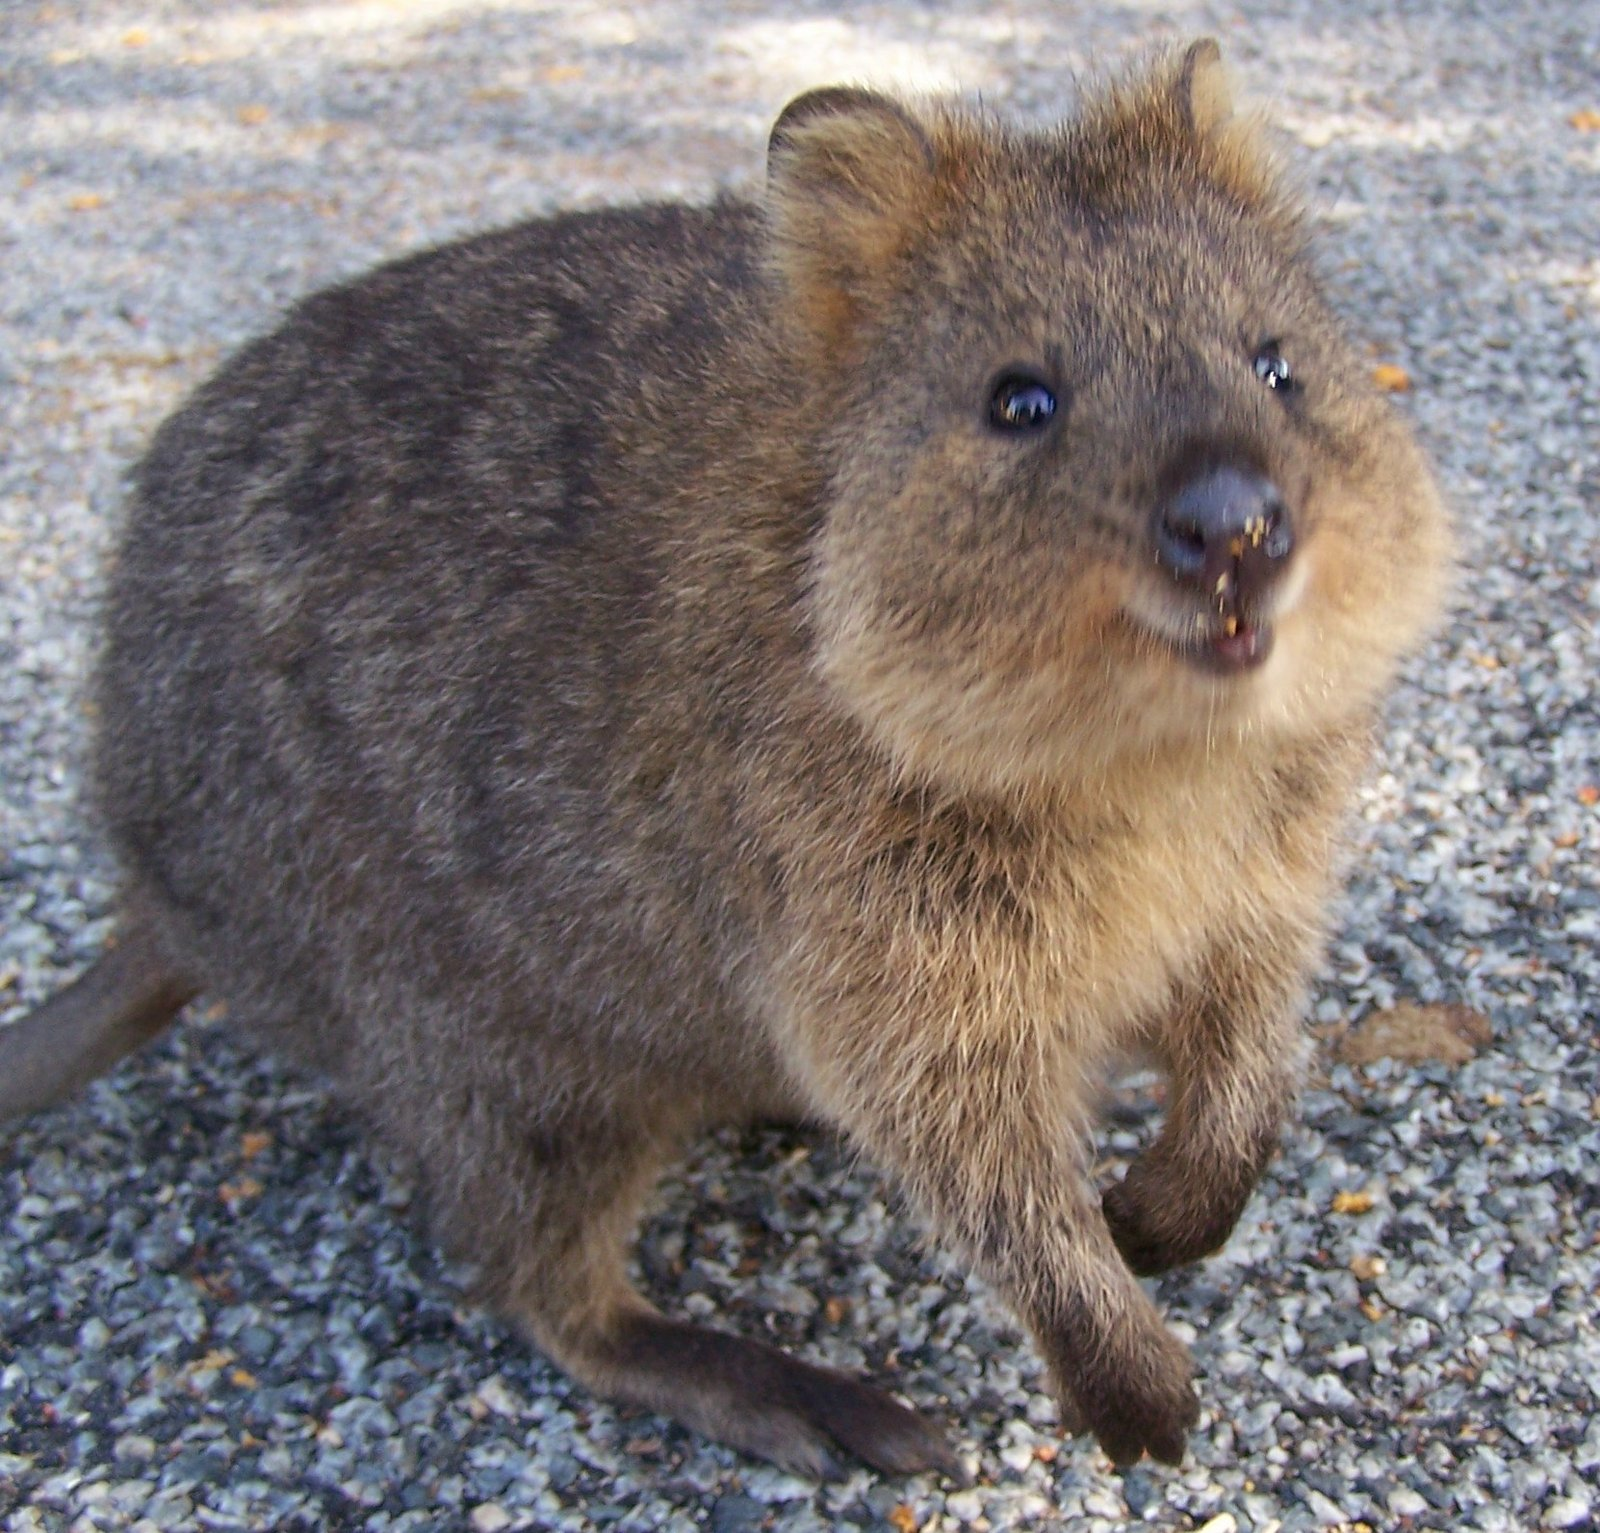 Baby quokka smiling - photo#21